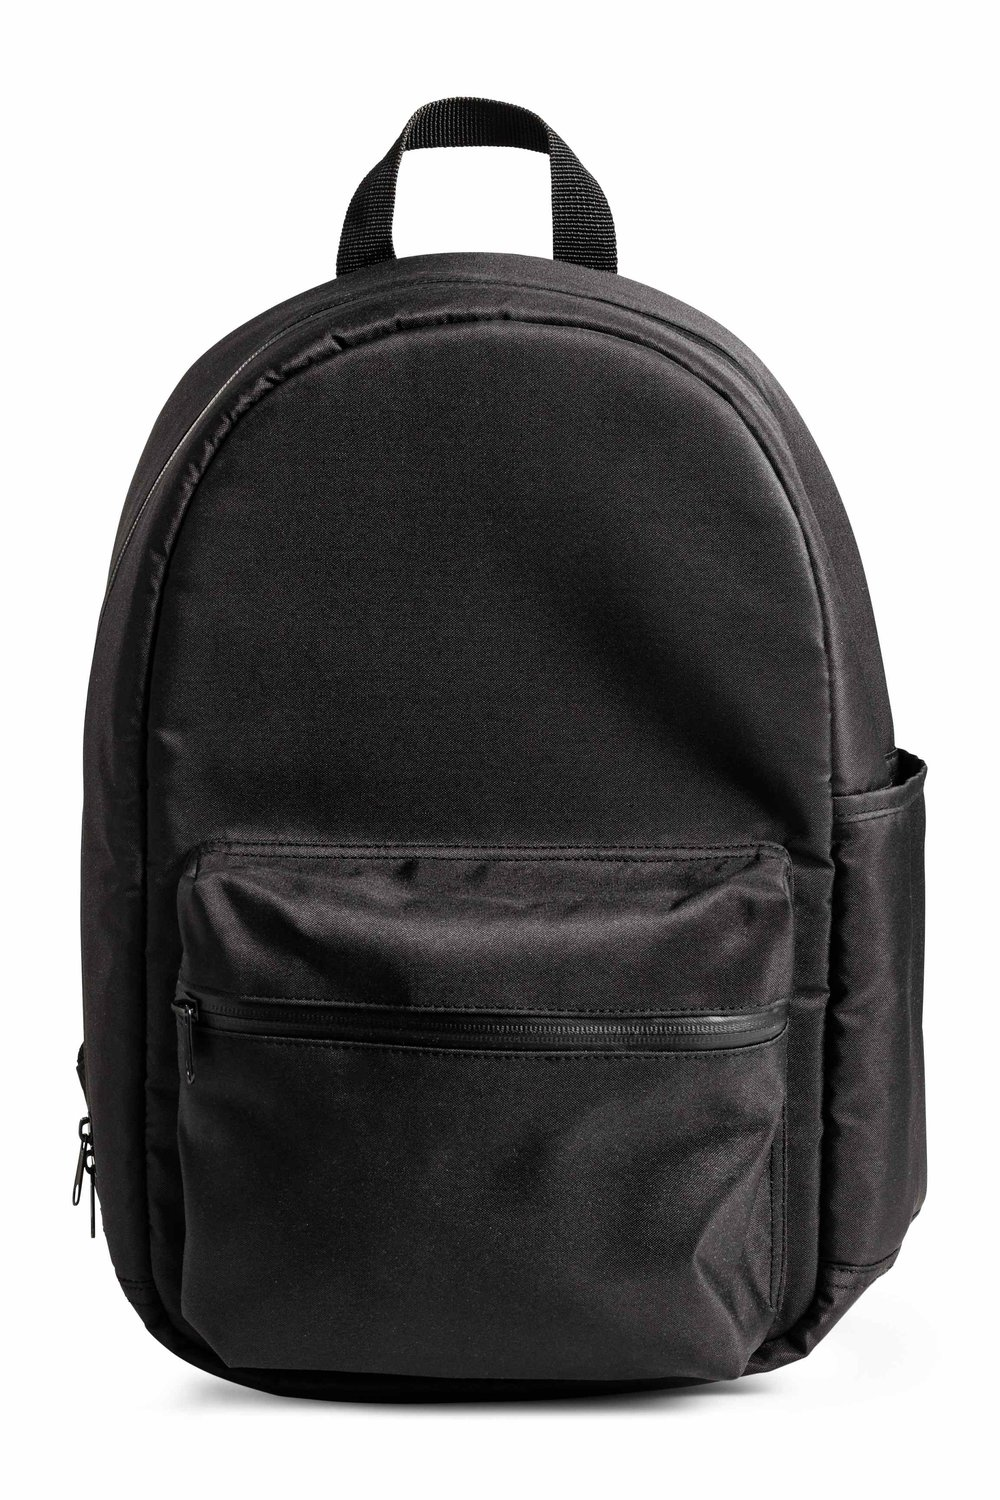 Backpack, £24.99 (hm.com)